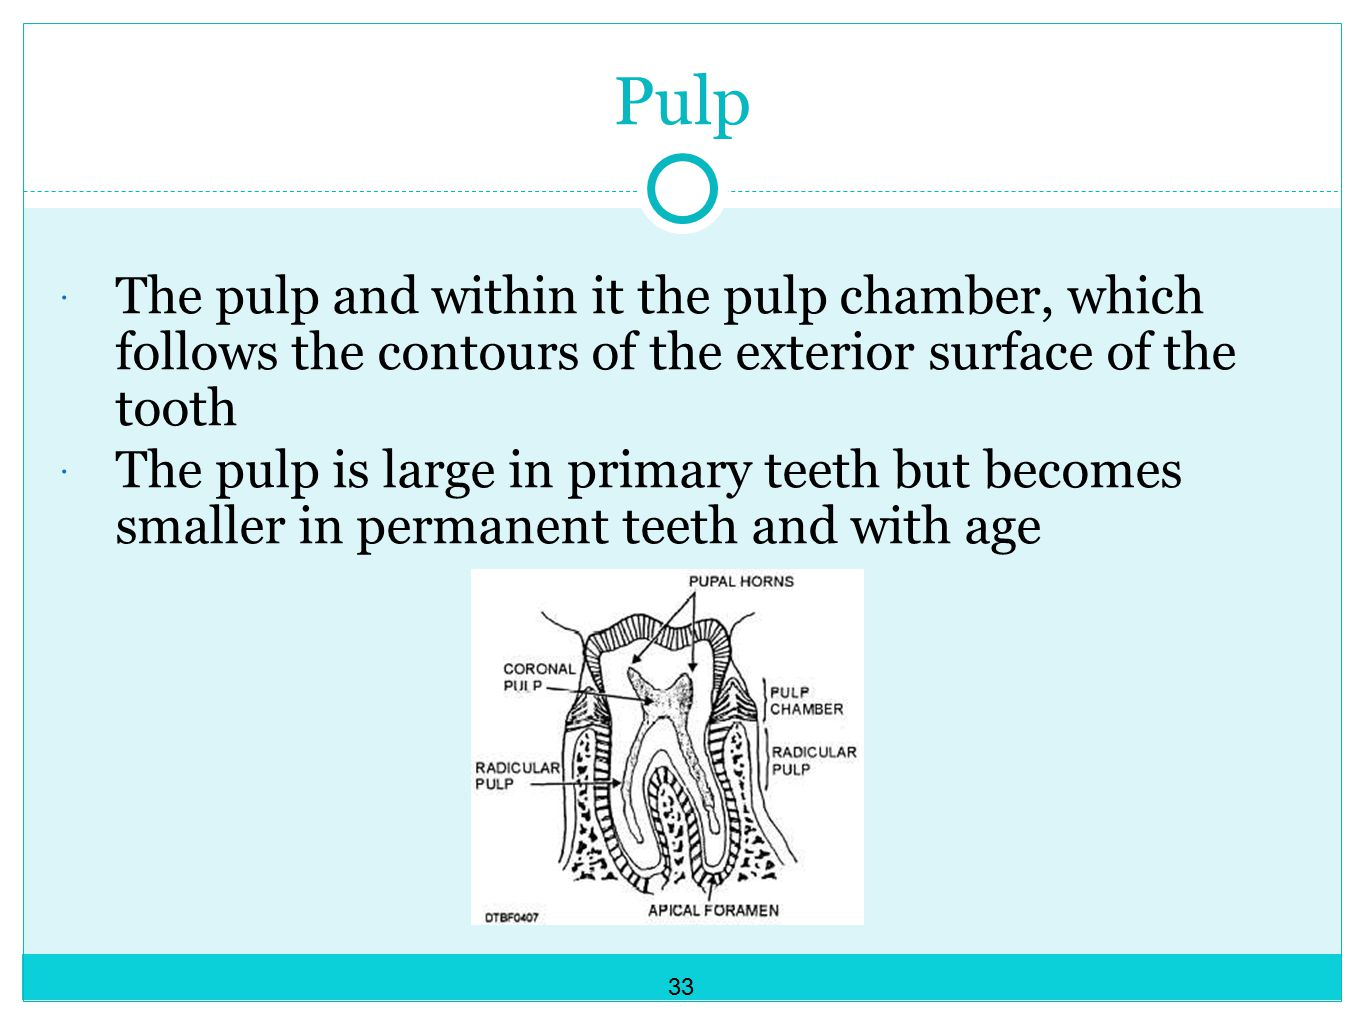 Pulp The pulp and within it the pulp chamber, which follows the contours of the exterior surface of the tooth.